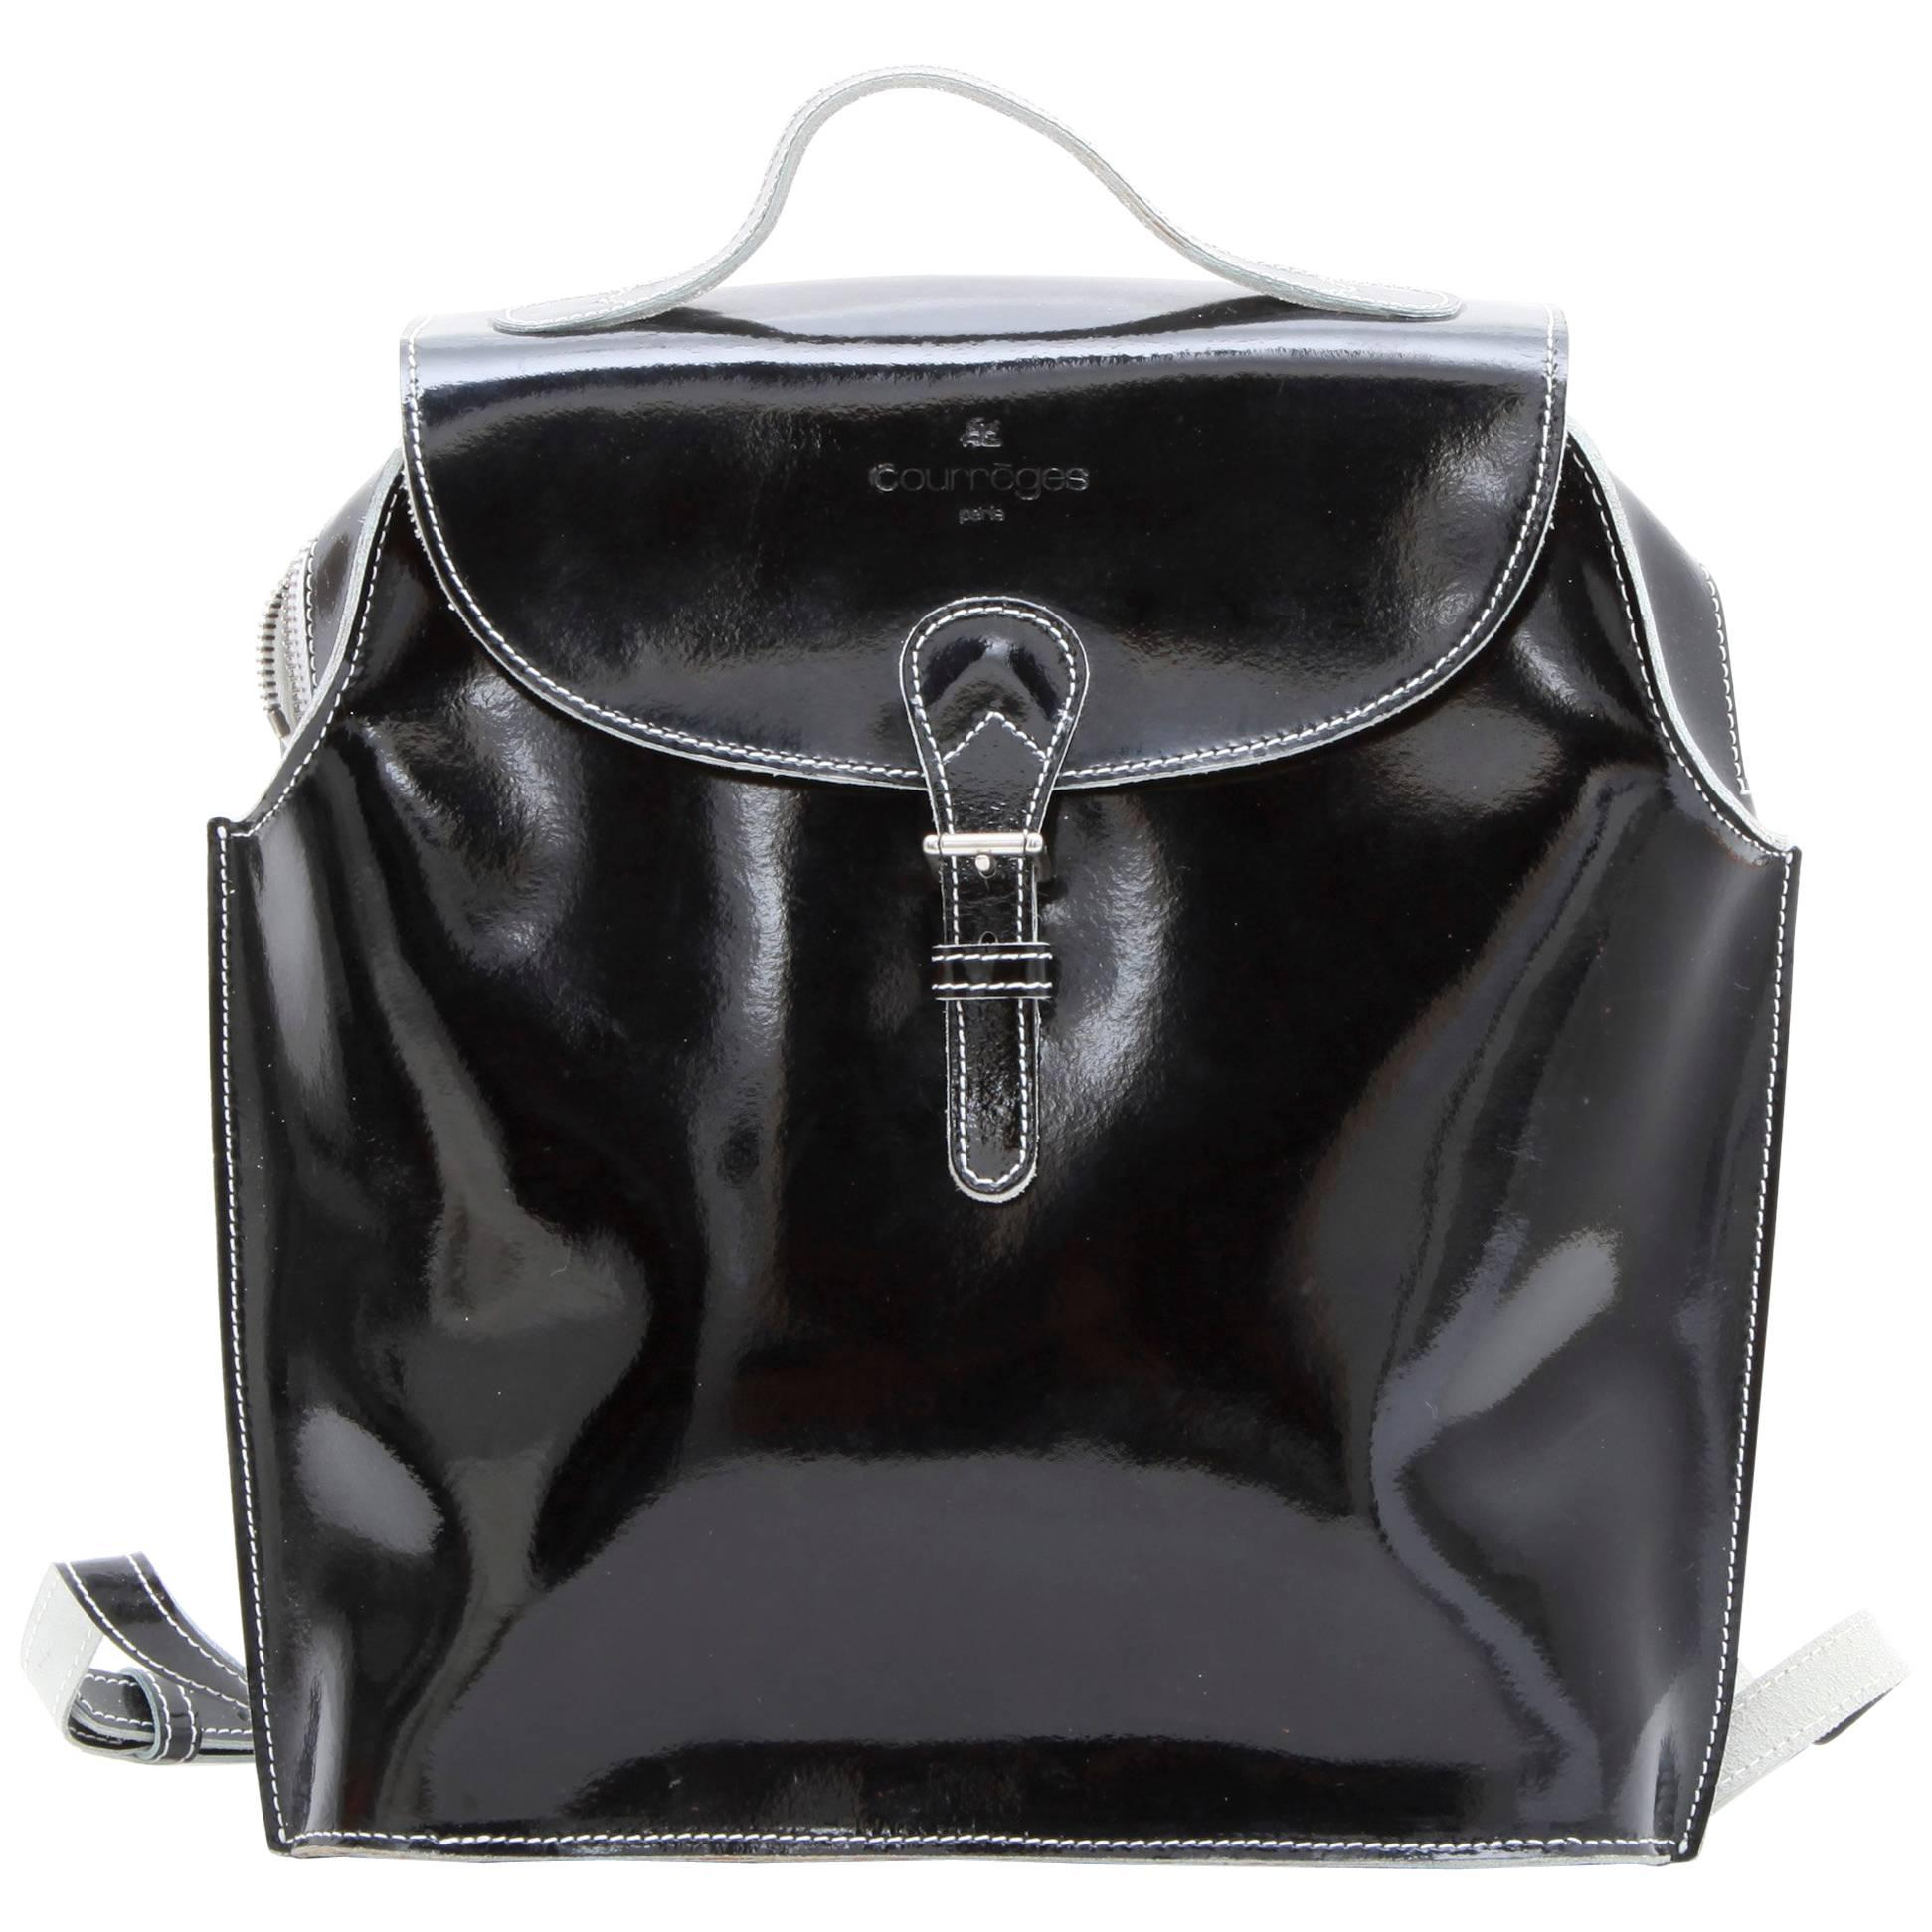 André Courrèges Courreges Bag - Black - Patent Leather - Makeup / Accessory - New NNBlV5